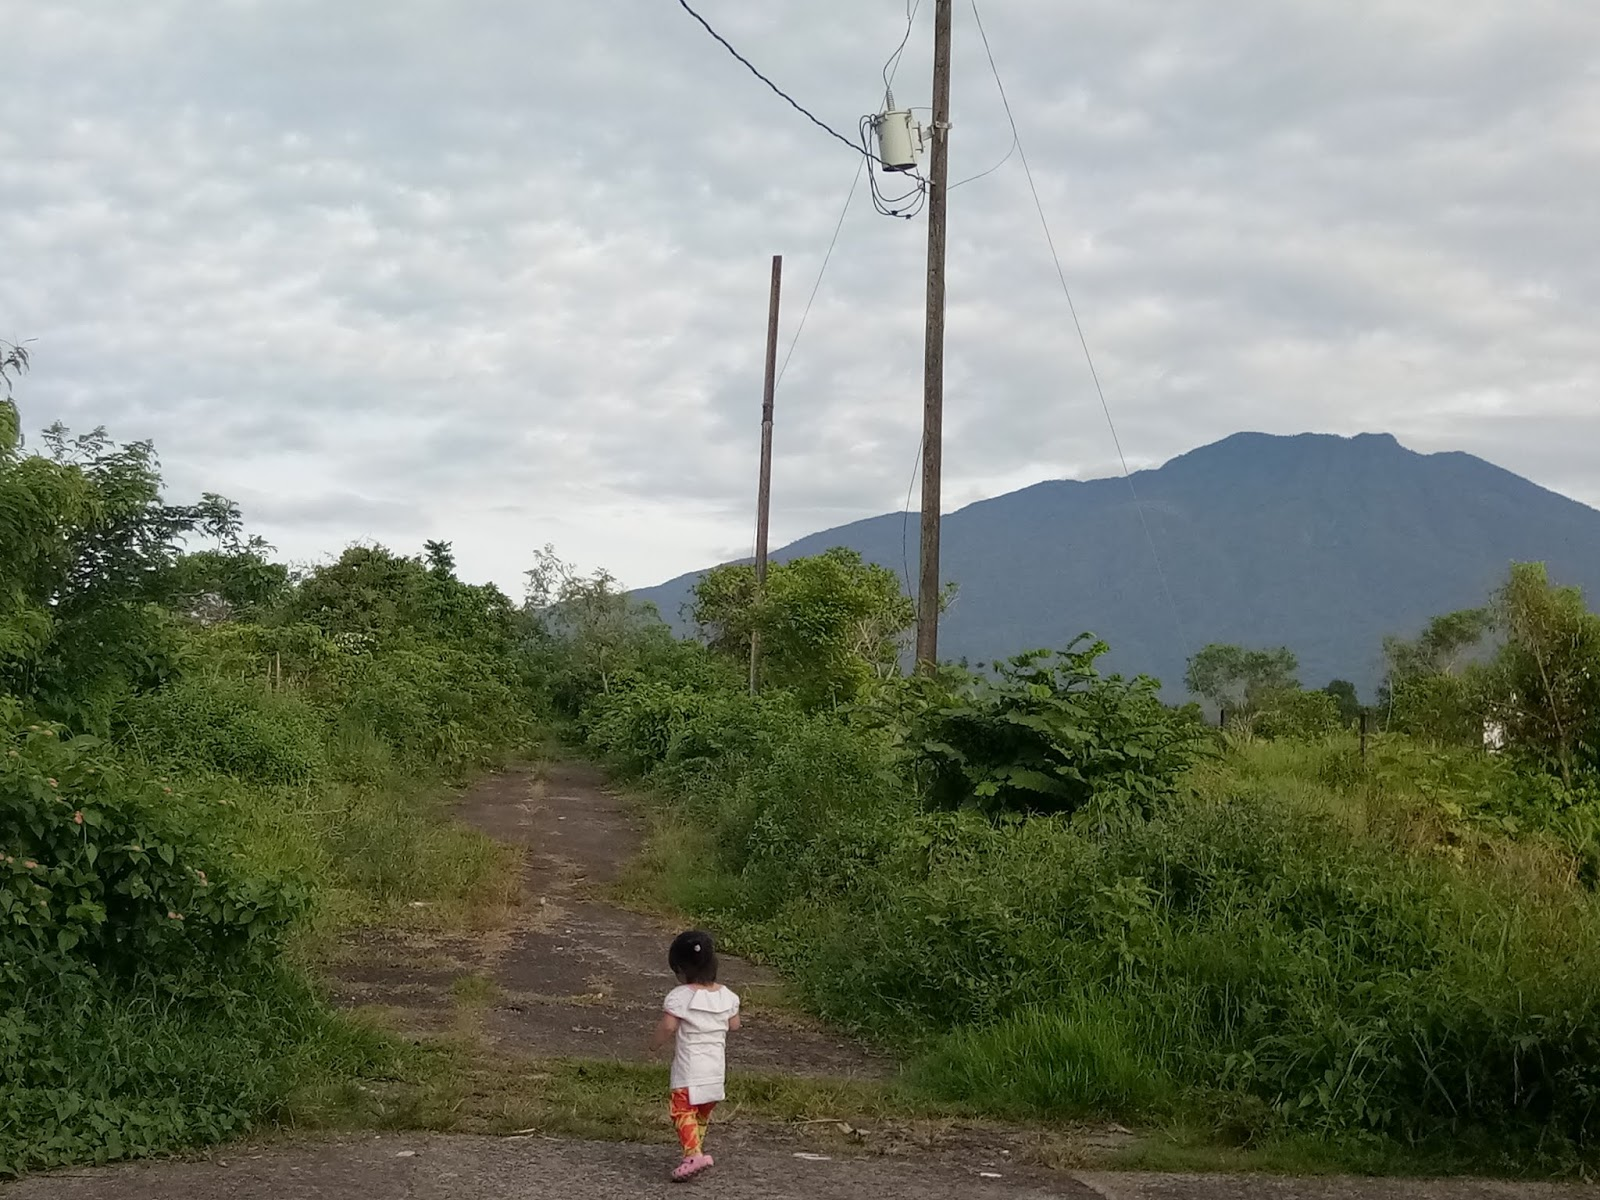 Day 1: Everyday View from Home - Mt. Banahaw